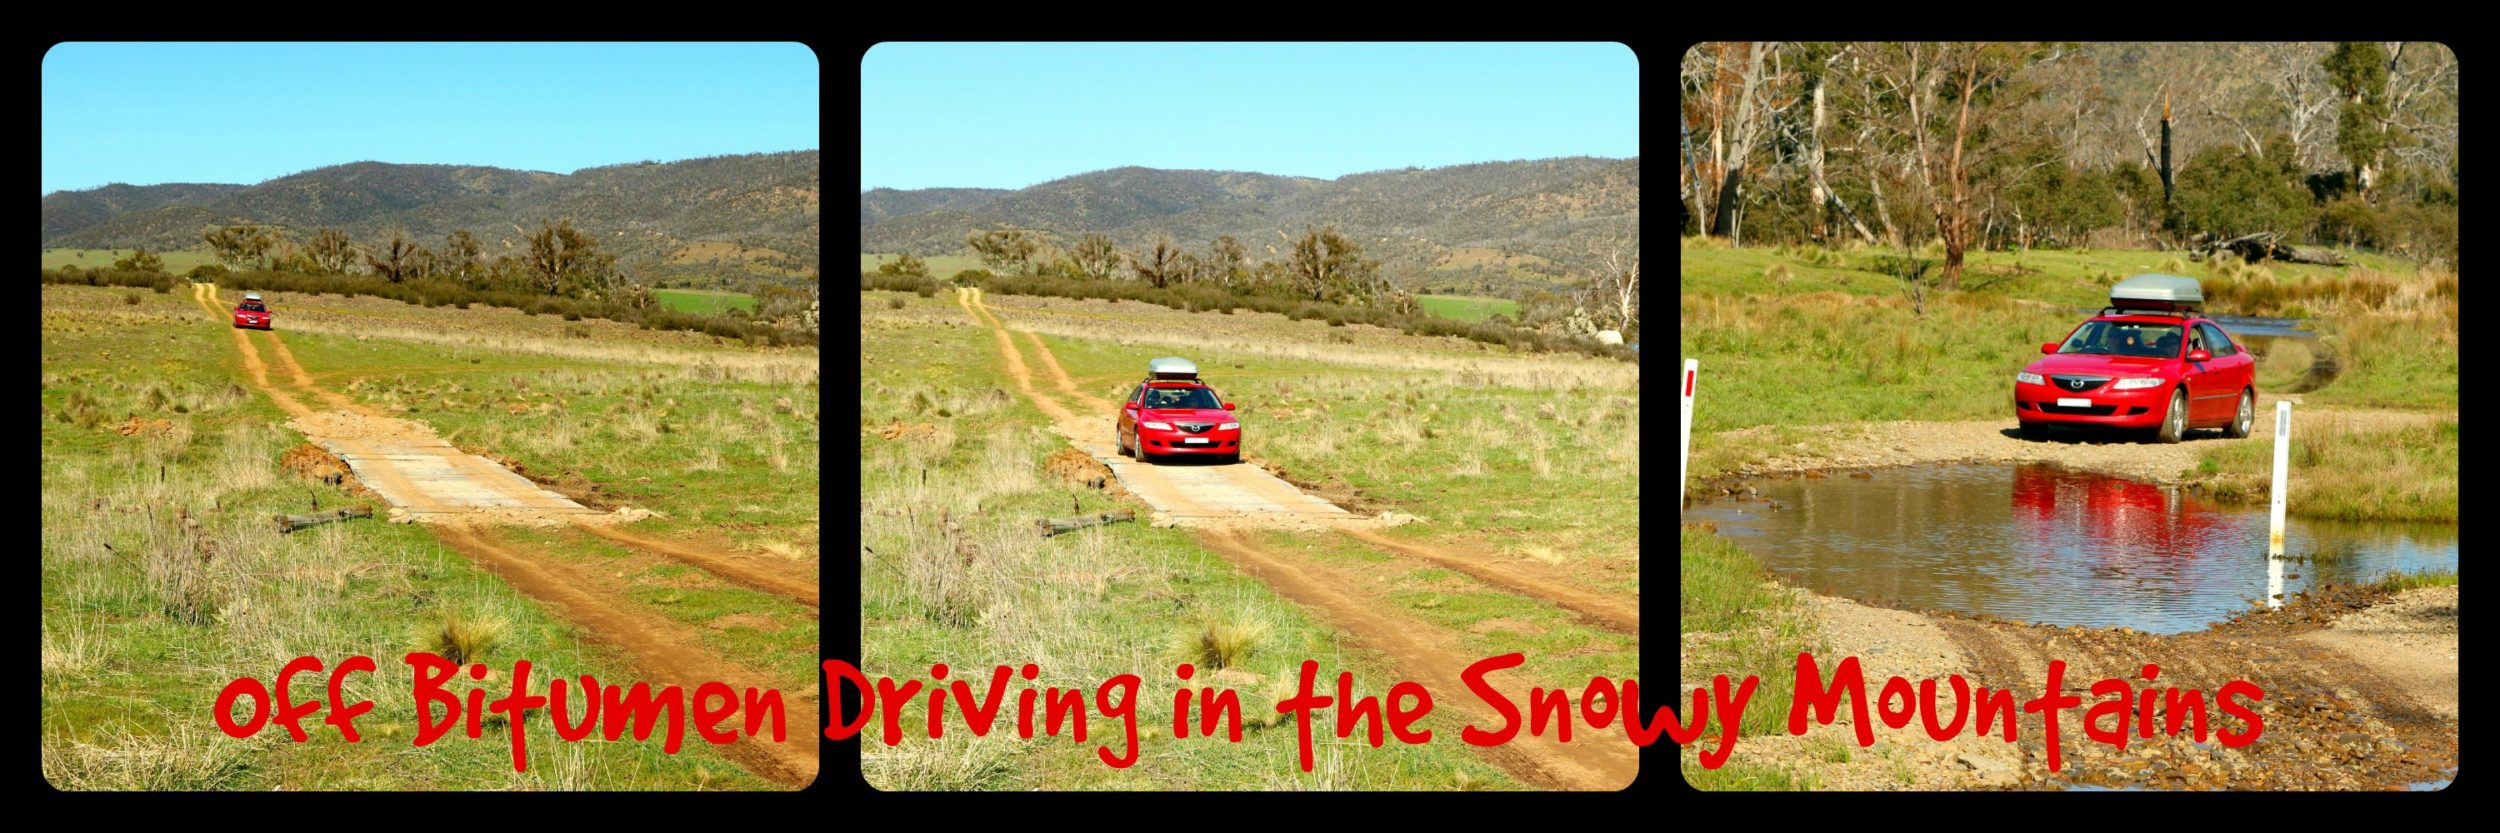 Off Bitumen Driving in the Snowy Mountains, Australia